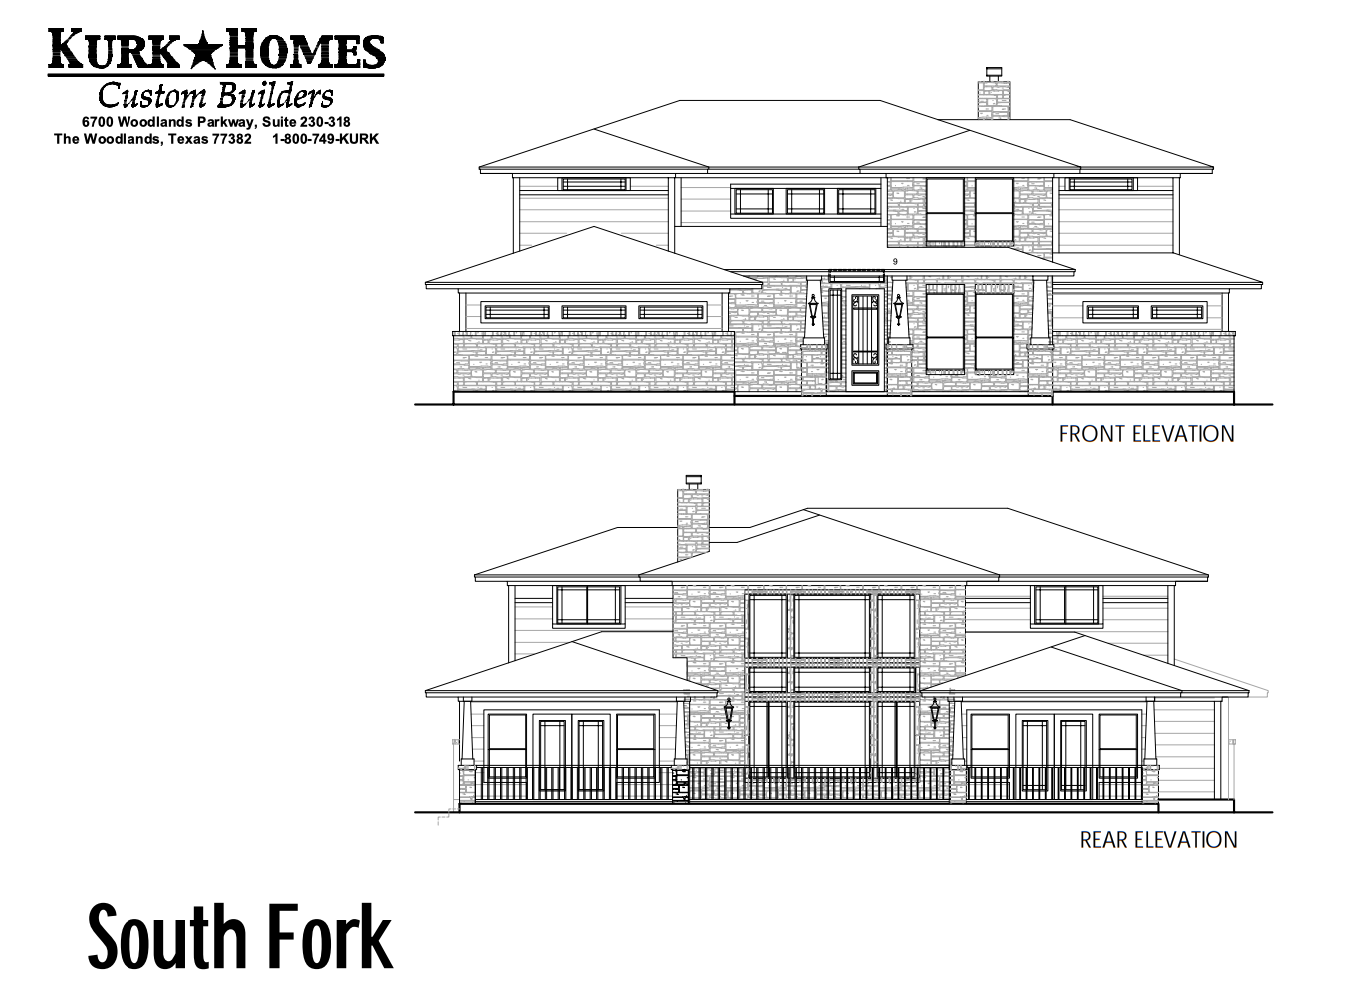 South Fork Elevation